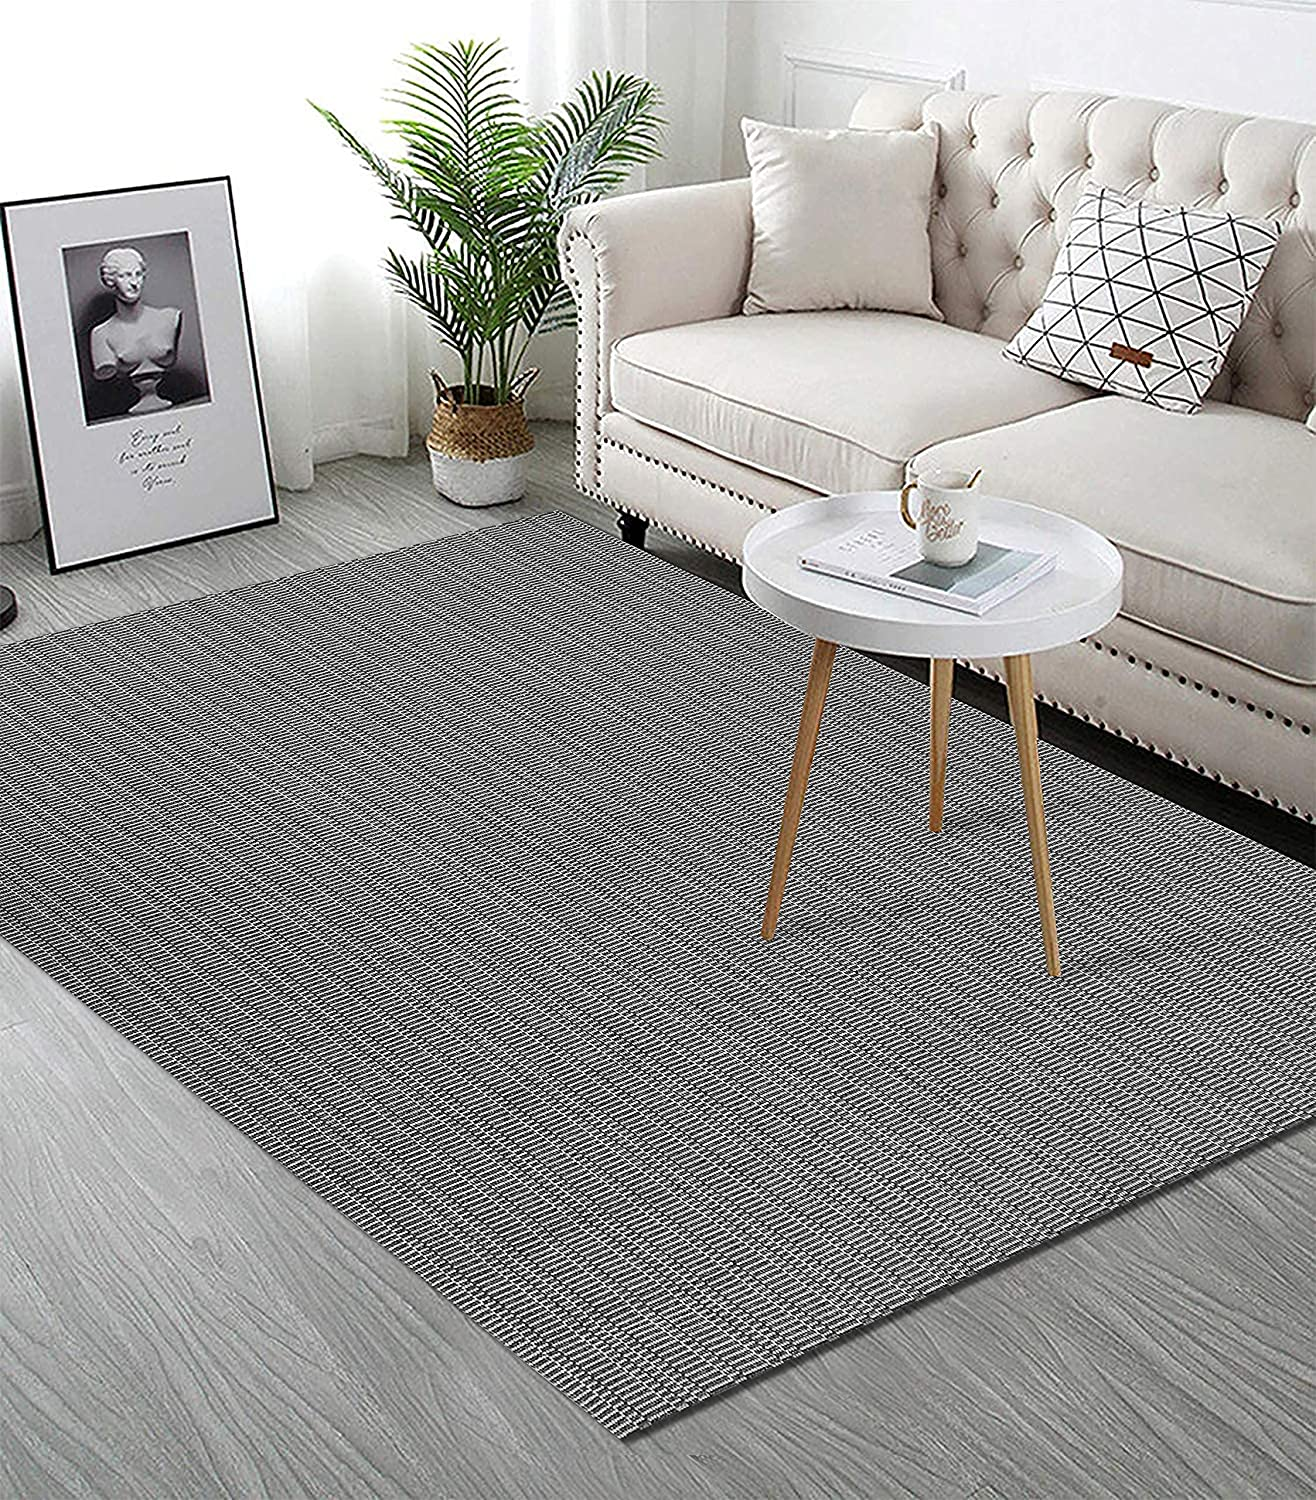 Upgraded Boho Area Rug 3'x5', Black and Grey Carpet, 100% Woven Cotton Washable Grey Outdoor Rug for Home Decor, Tassel Rug for Kitchen/Living Room/Bedroom